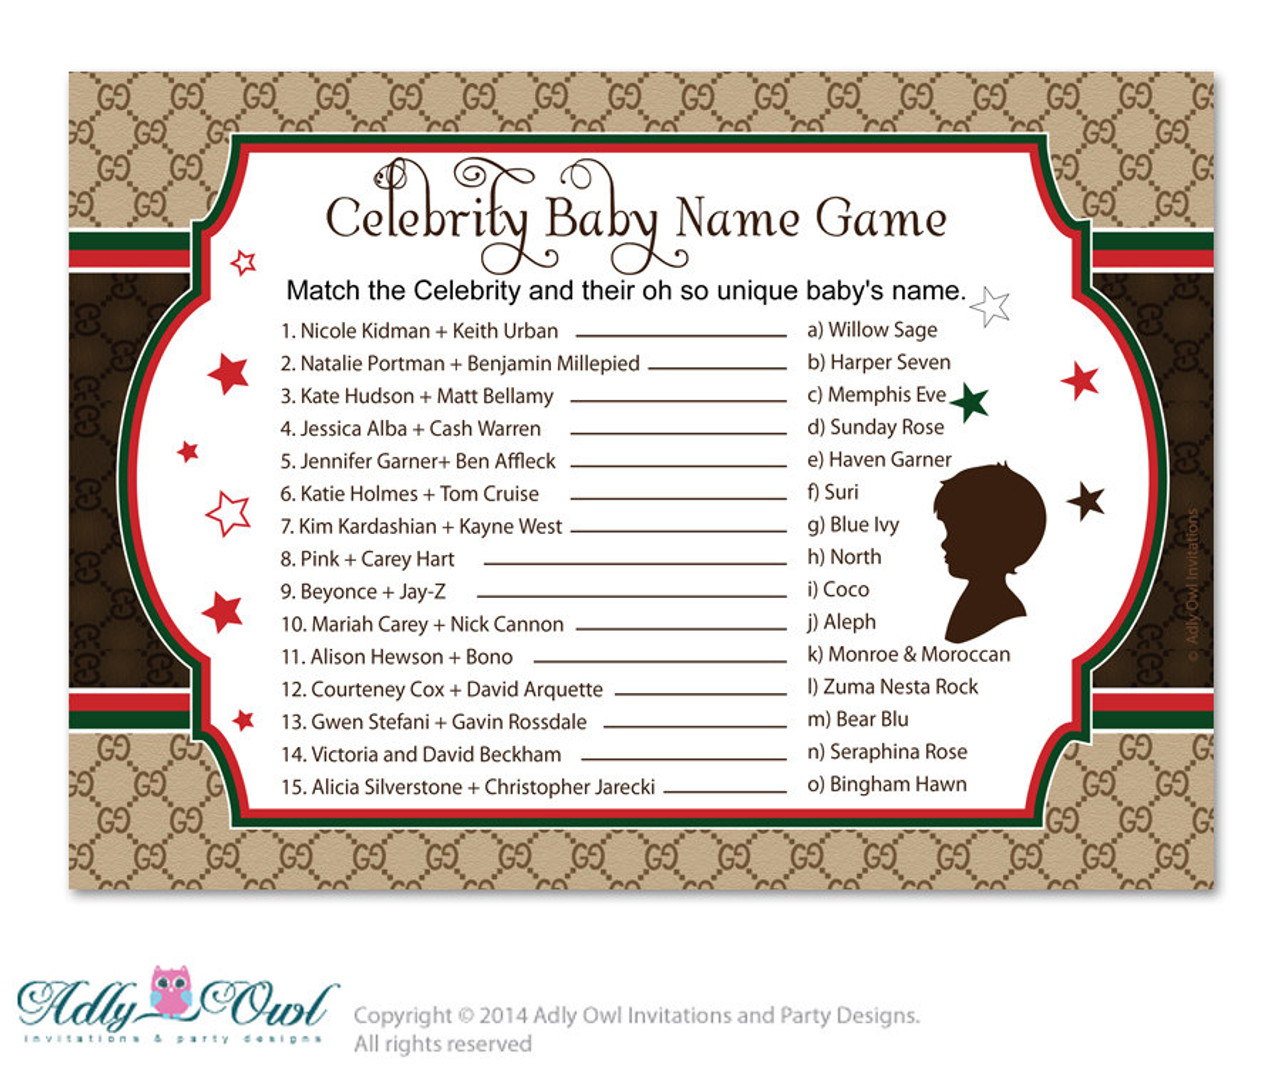 graphic about Celebrity Baby Name Game Printable named Gucci Boy Design Celeb Popularity Recreation, Wager Movie star Little one Track record match, renowned boy or girl names Design and style Shower Do it yourself Brown Crimson Gucci